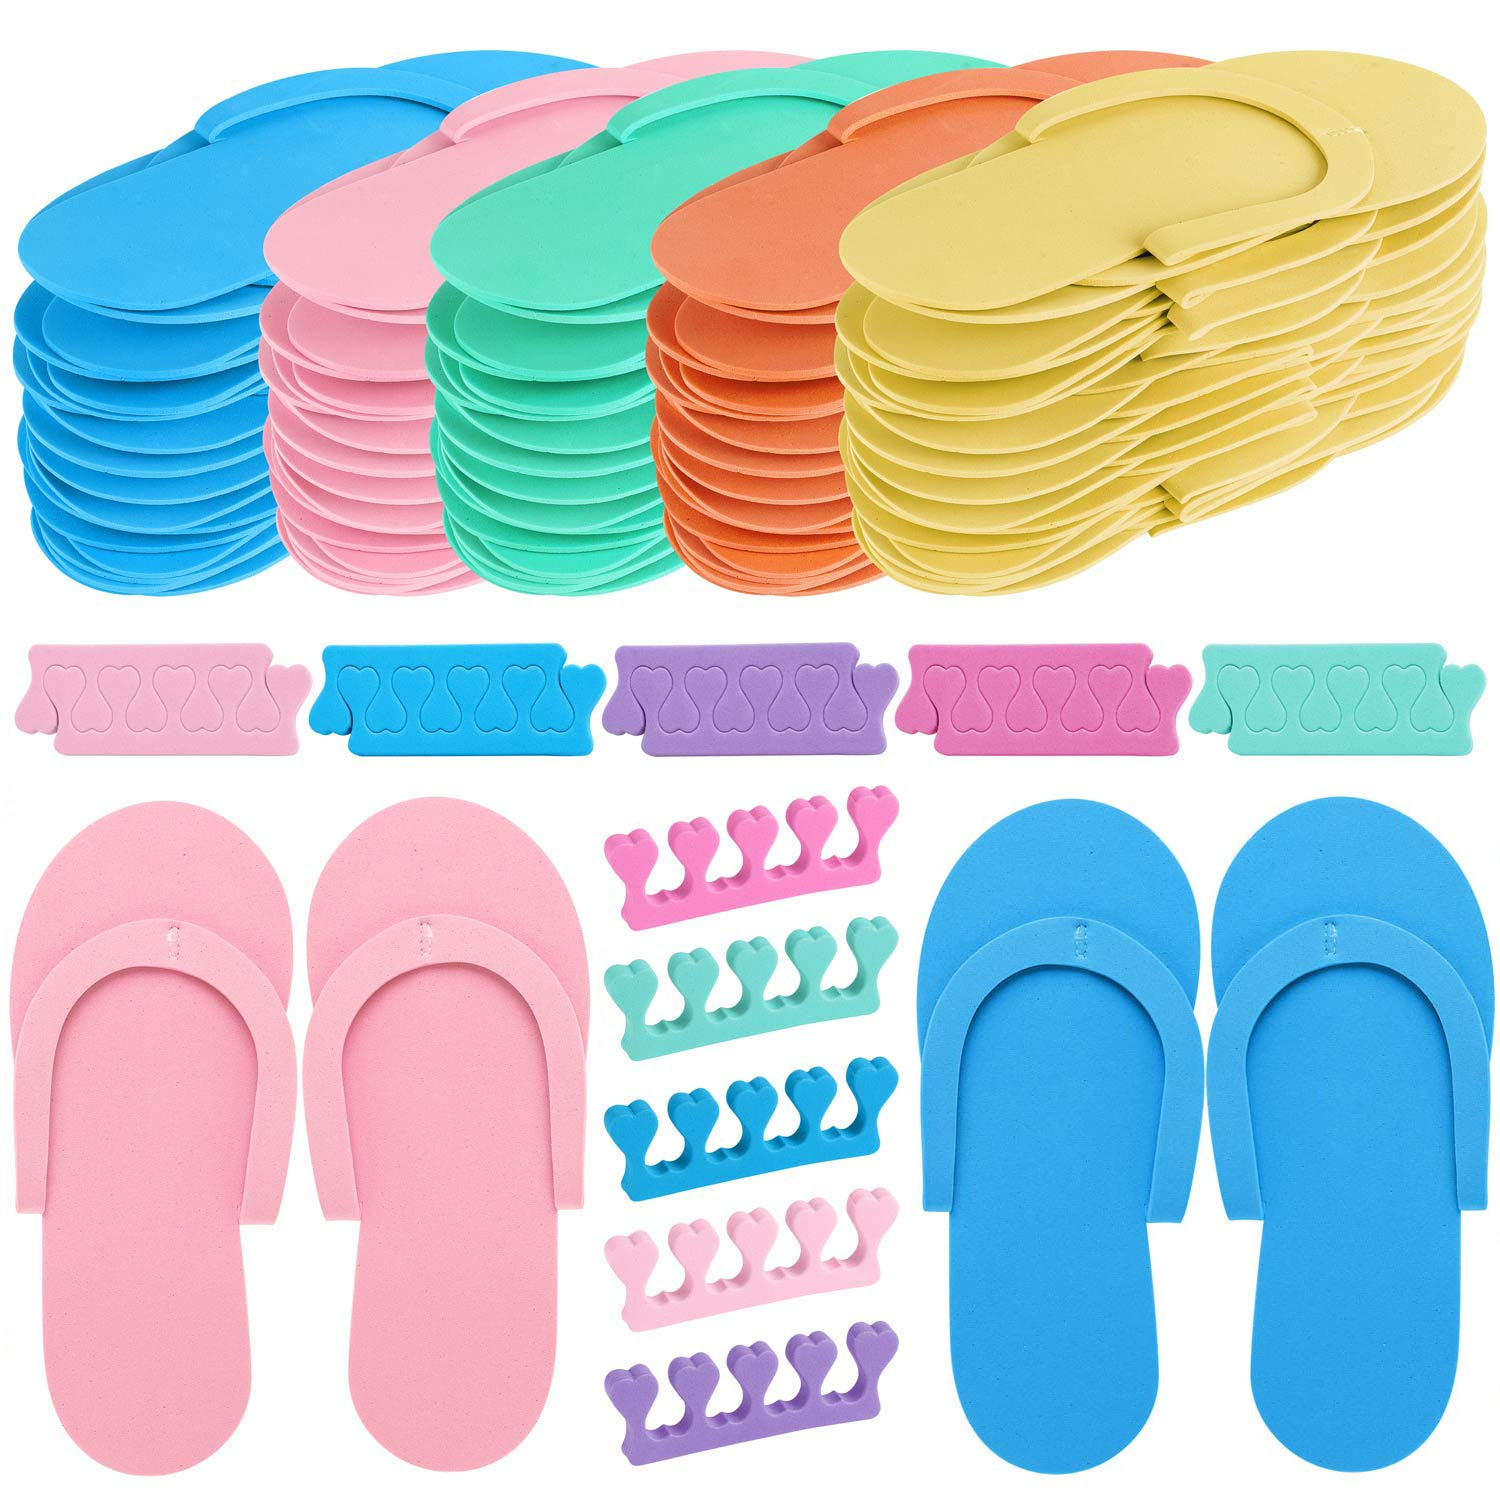 24 Pair Random Color Spa Flip Flops Disposable Slippers for Pedicures with 24 Pair Toe Spacers Separators Bulk Soft Toe Cushions Applying Salon Nail Tool by Tbestmax